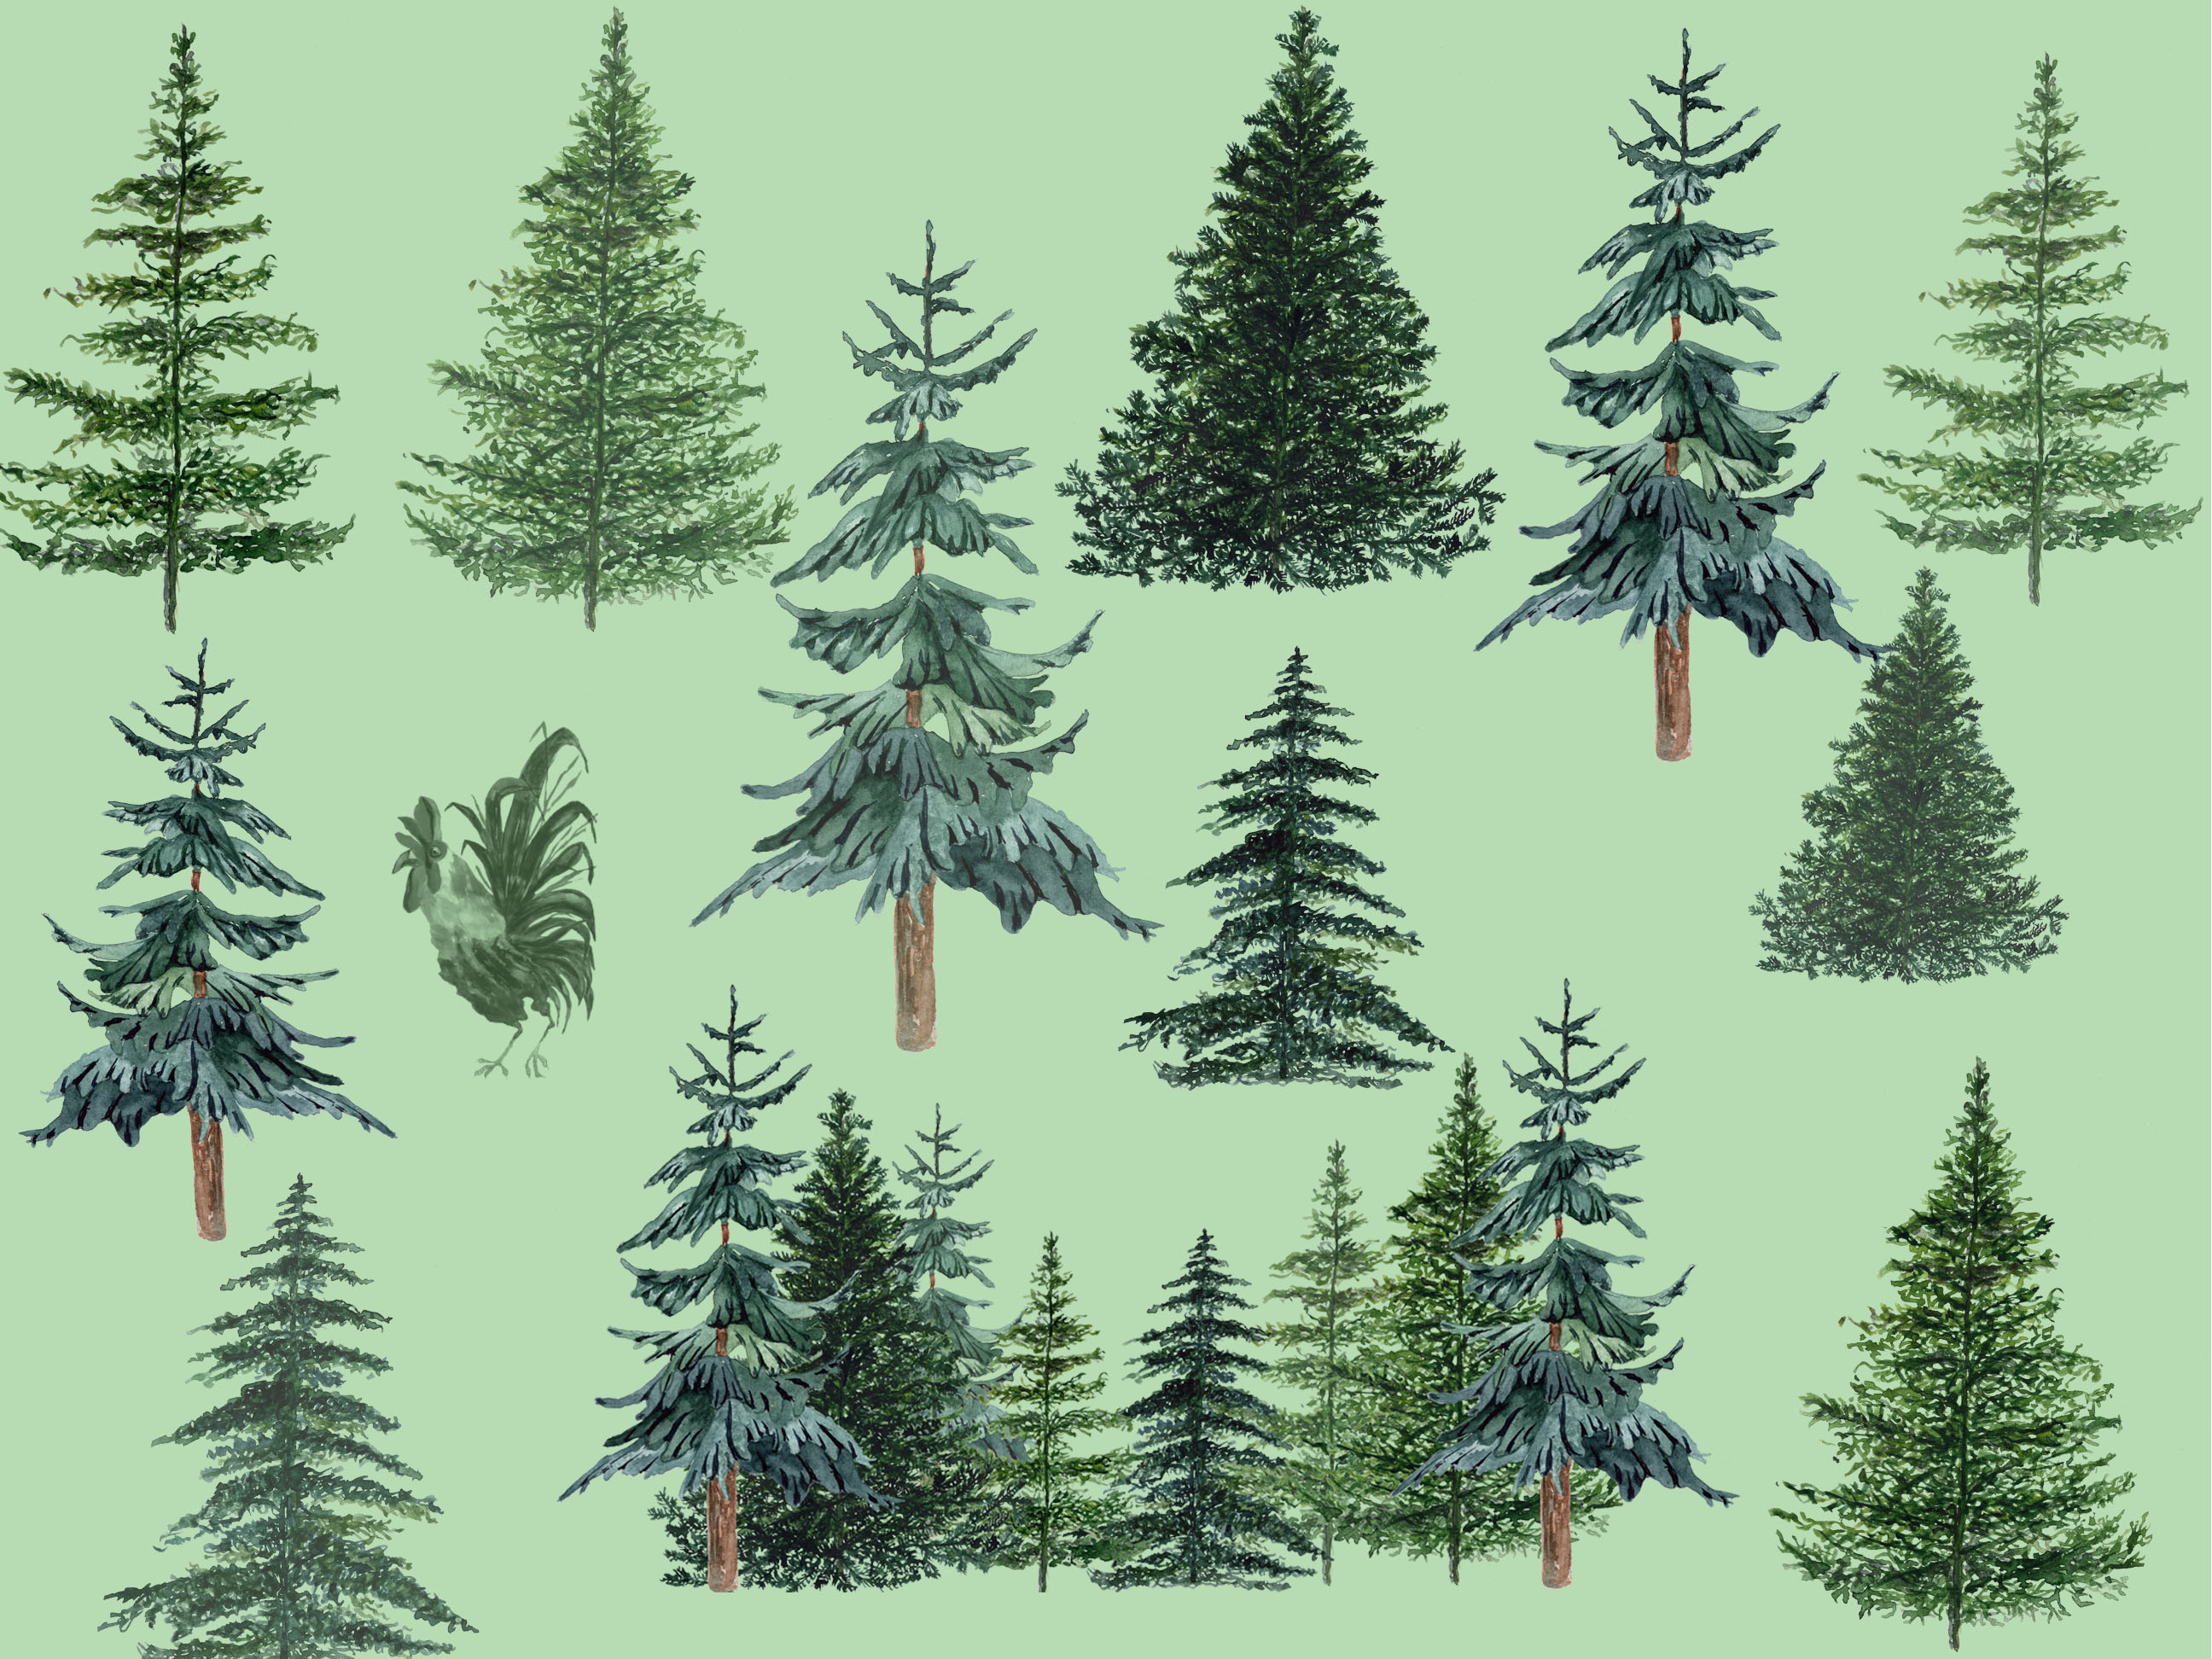 Conifers trees clipart example image 5